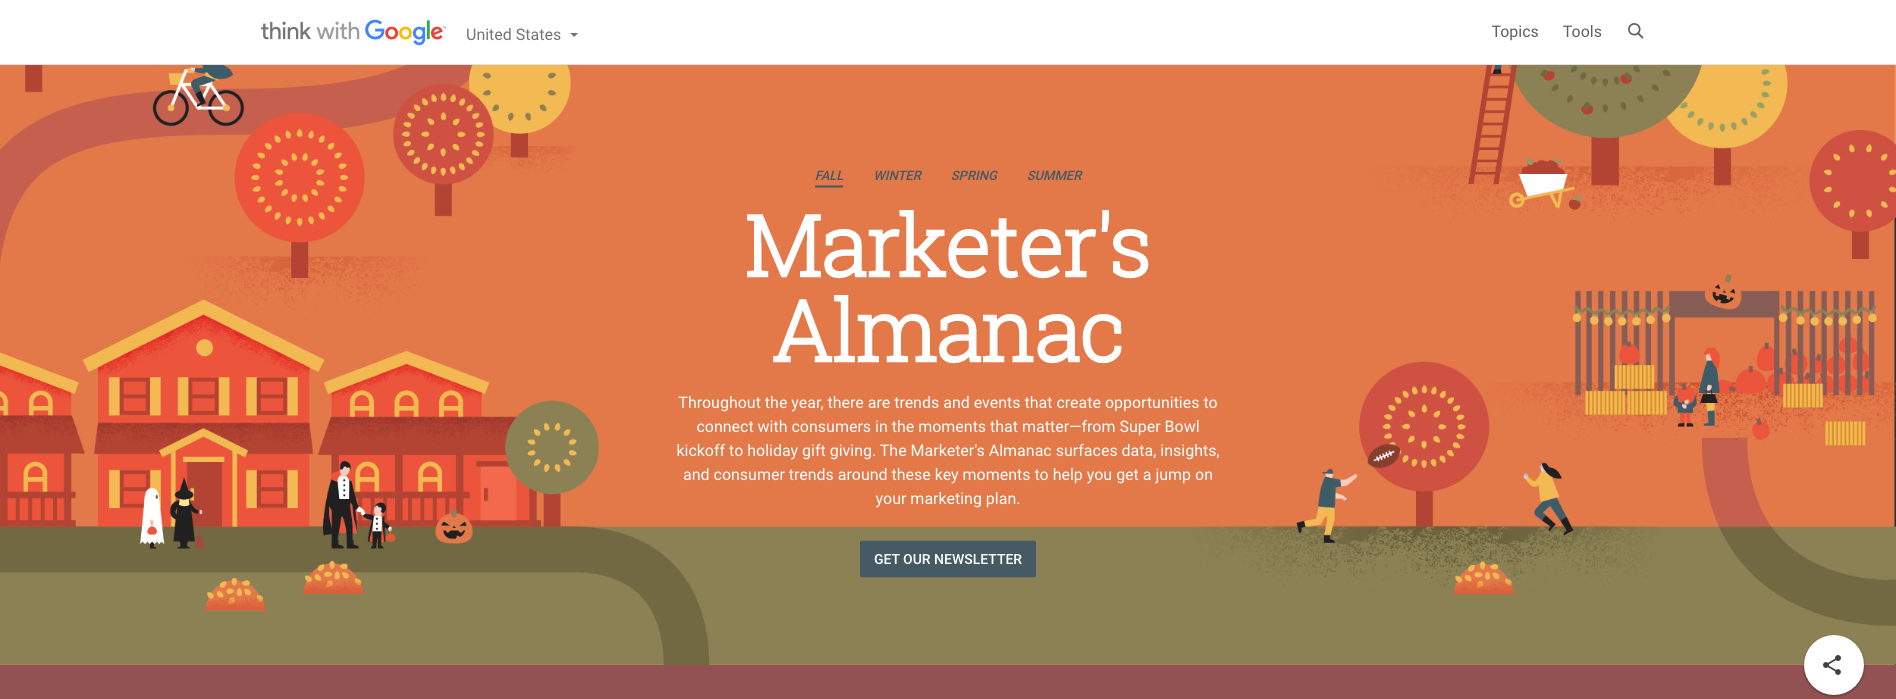 Marketer_s_Almanac_Think_with_Google.png  17 Data Visualization Resources You Should Bookmark Marketer s Almanac Think with Google